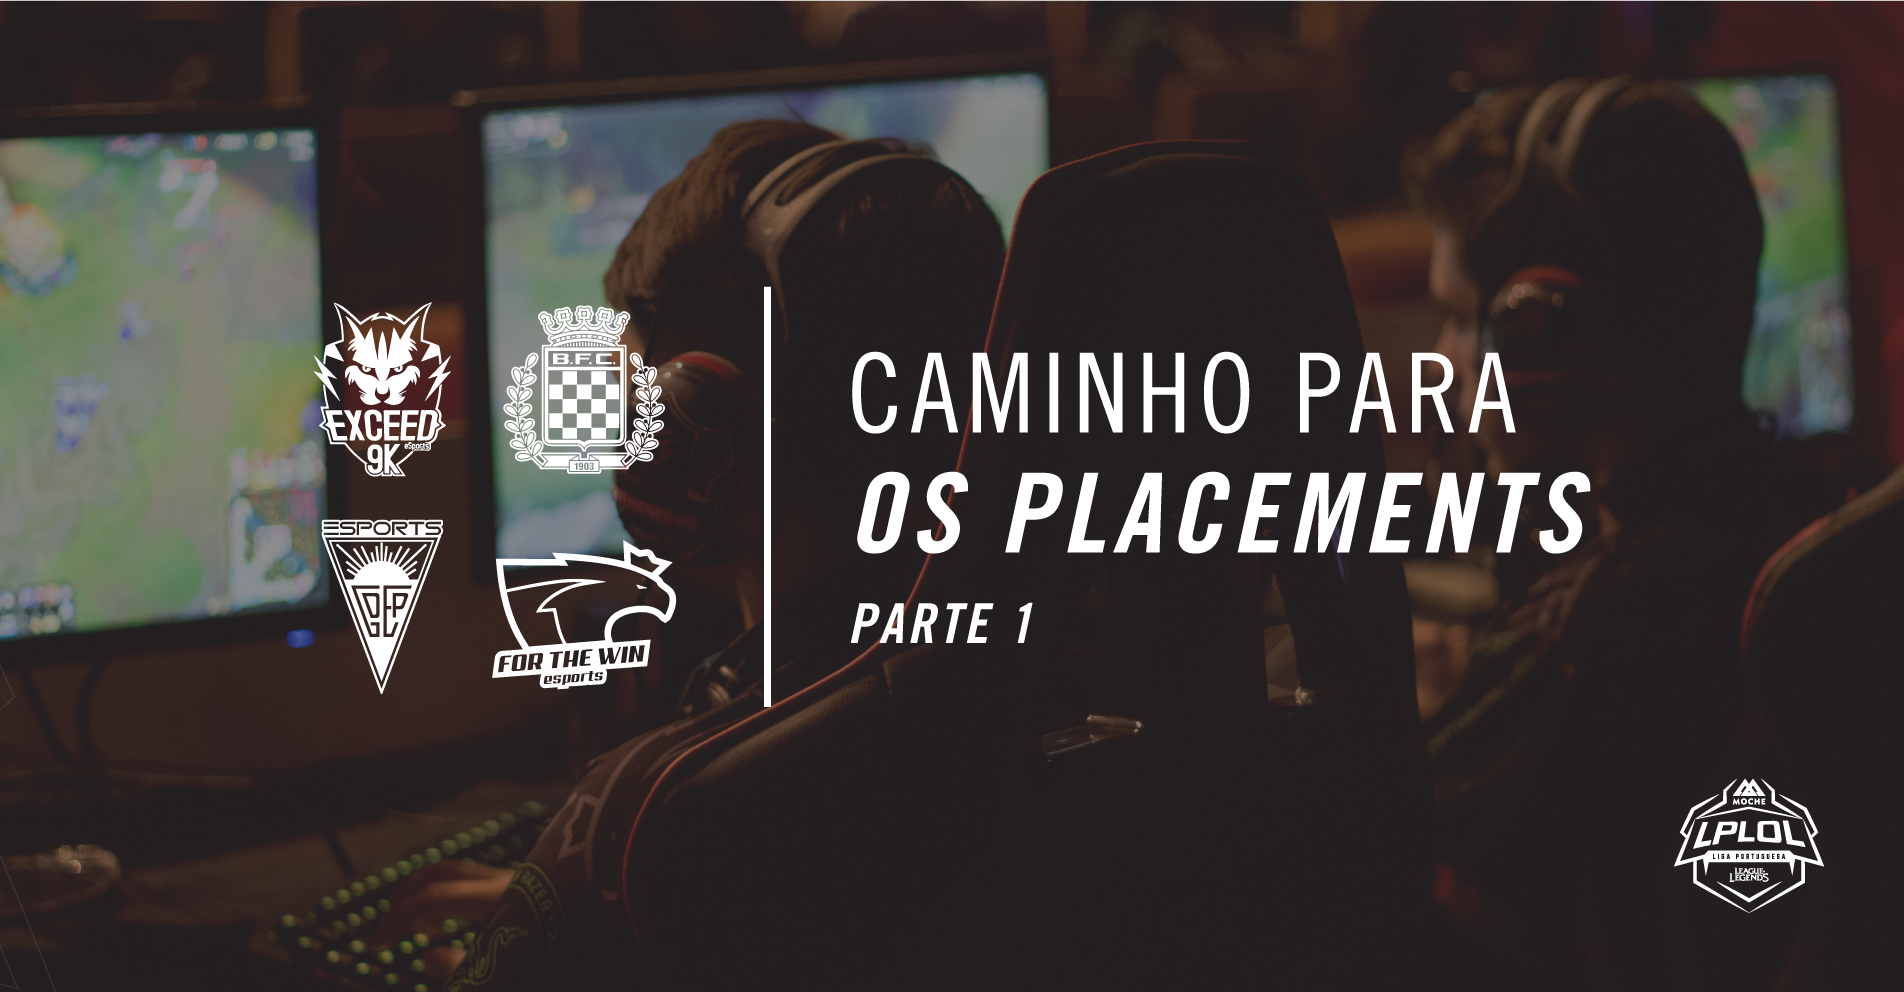 Lplol20 caminho placements